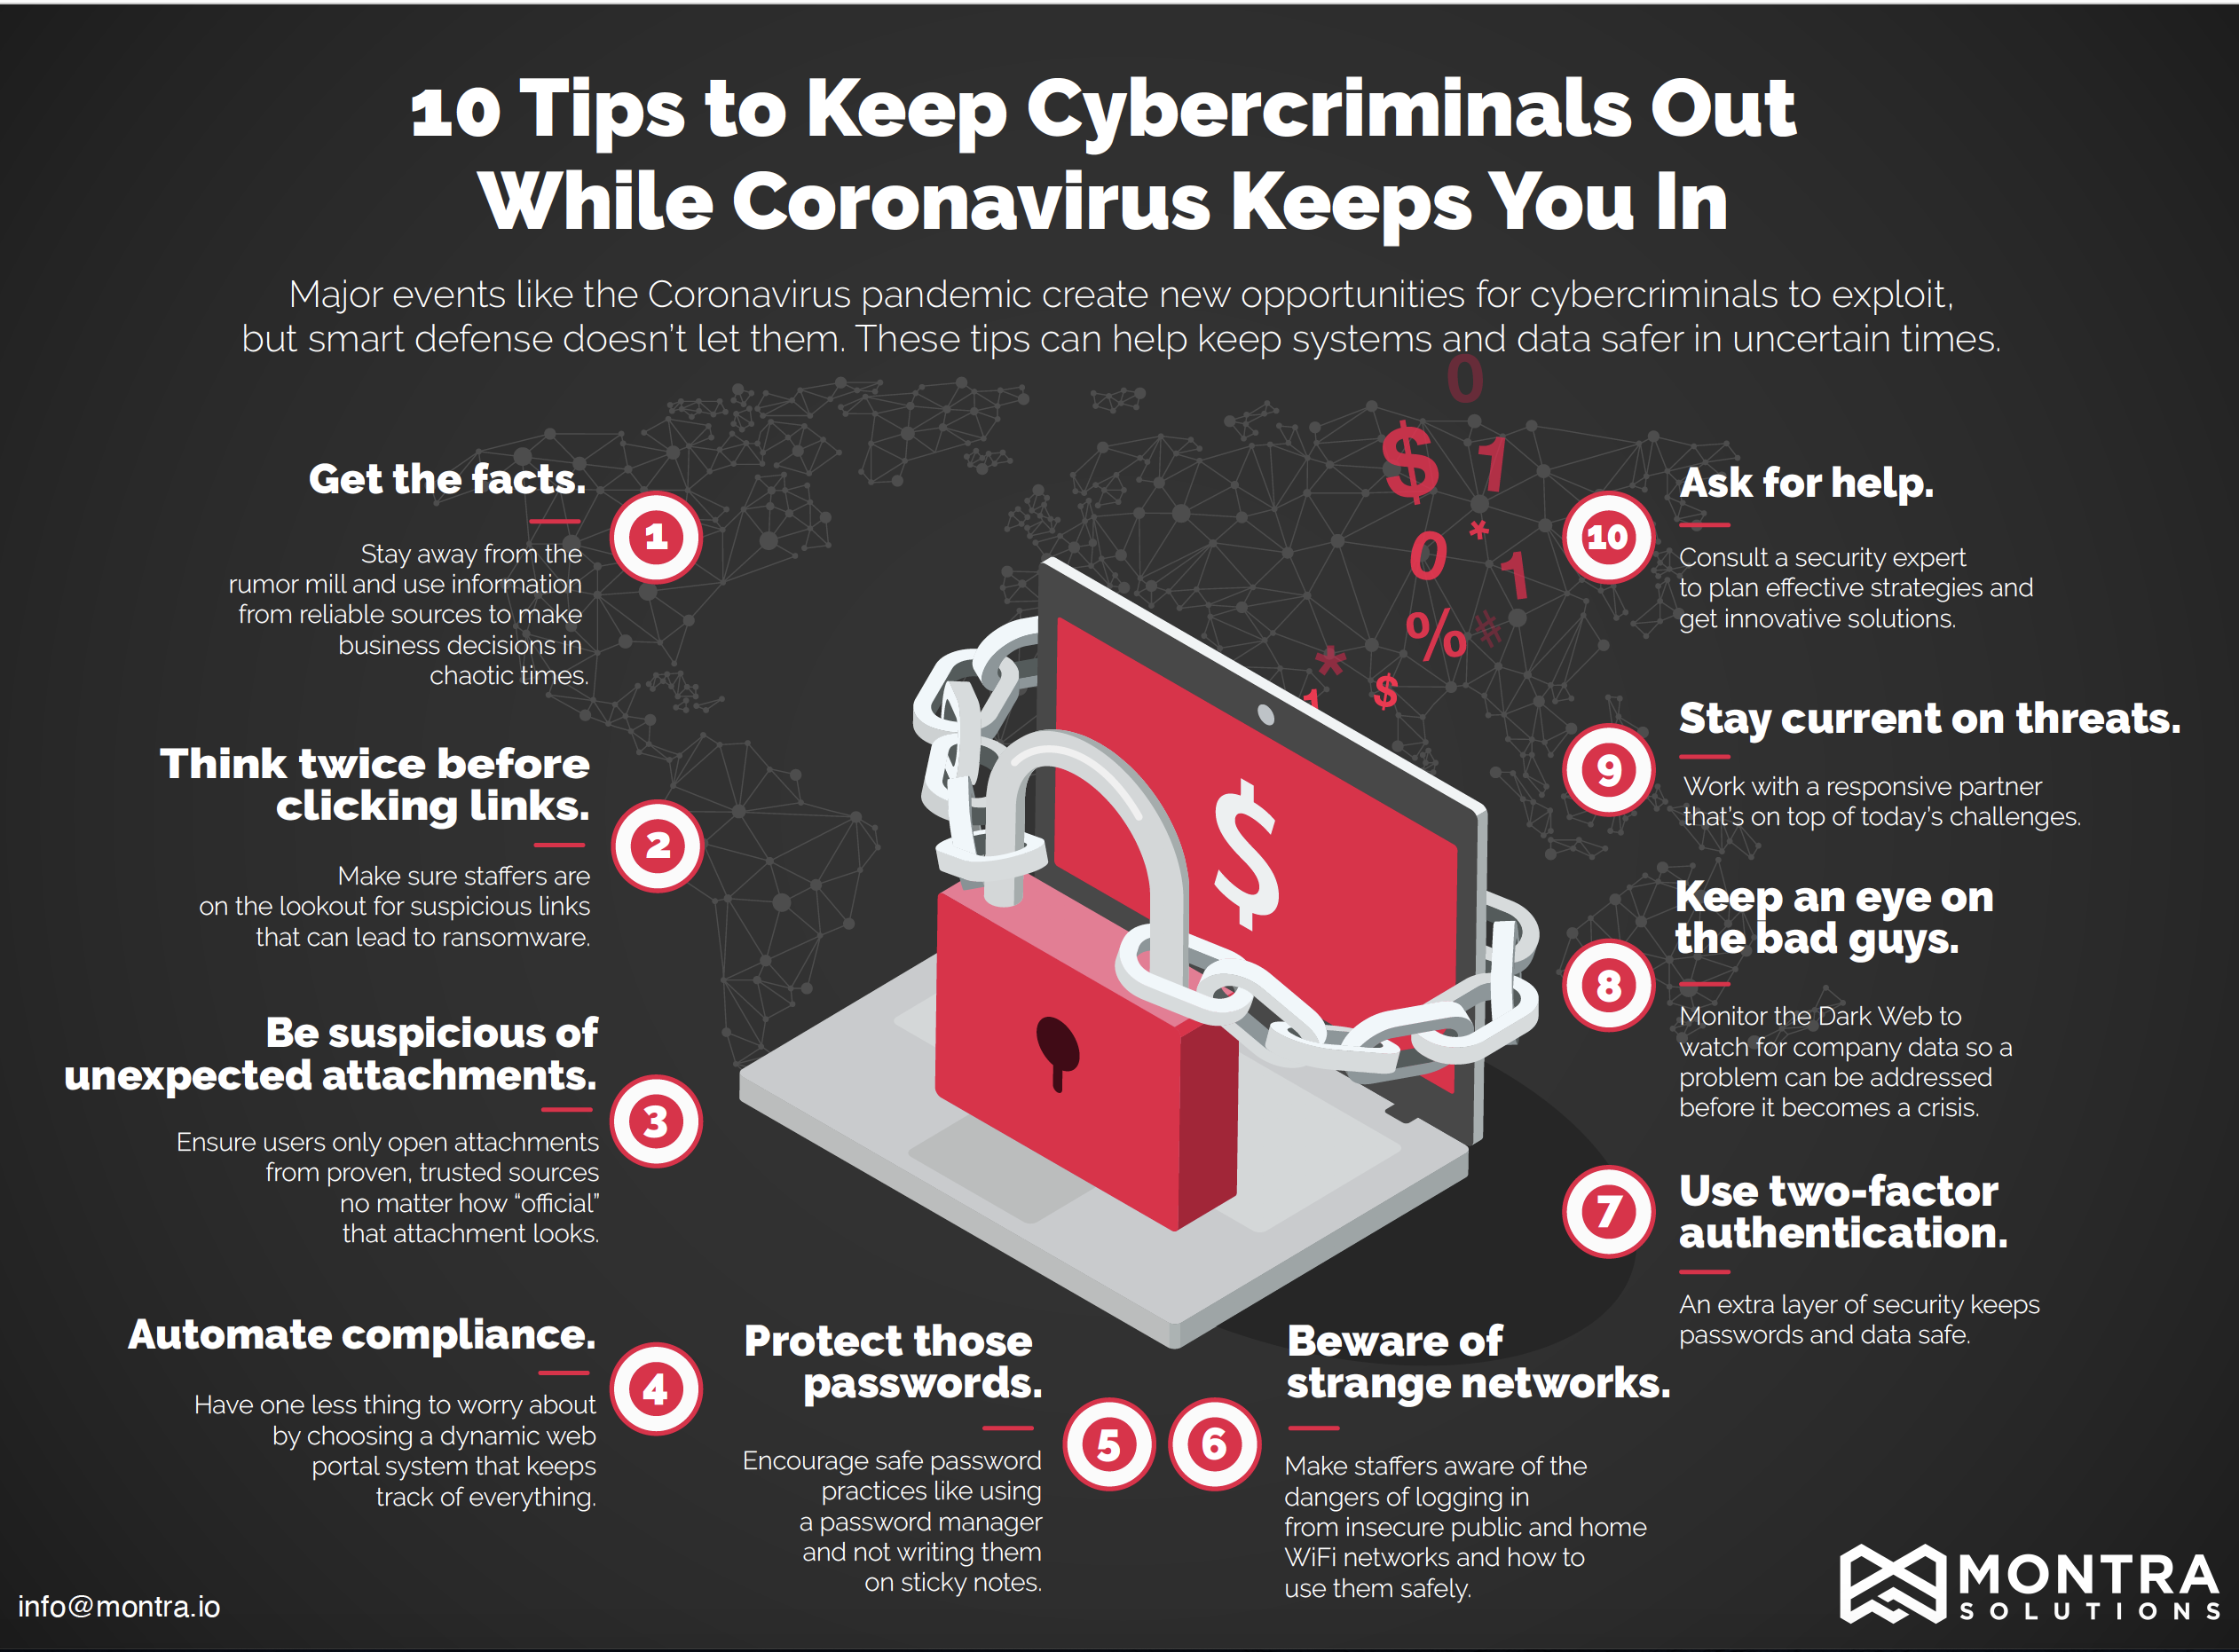 10 Tips to Keep Cybercriminals Out